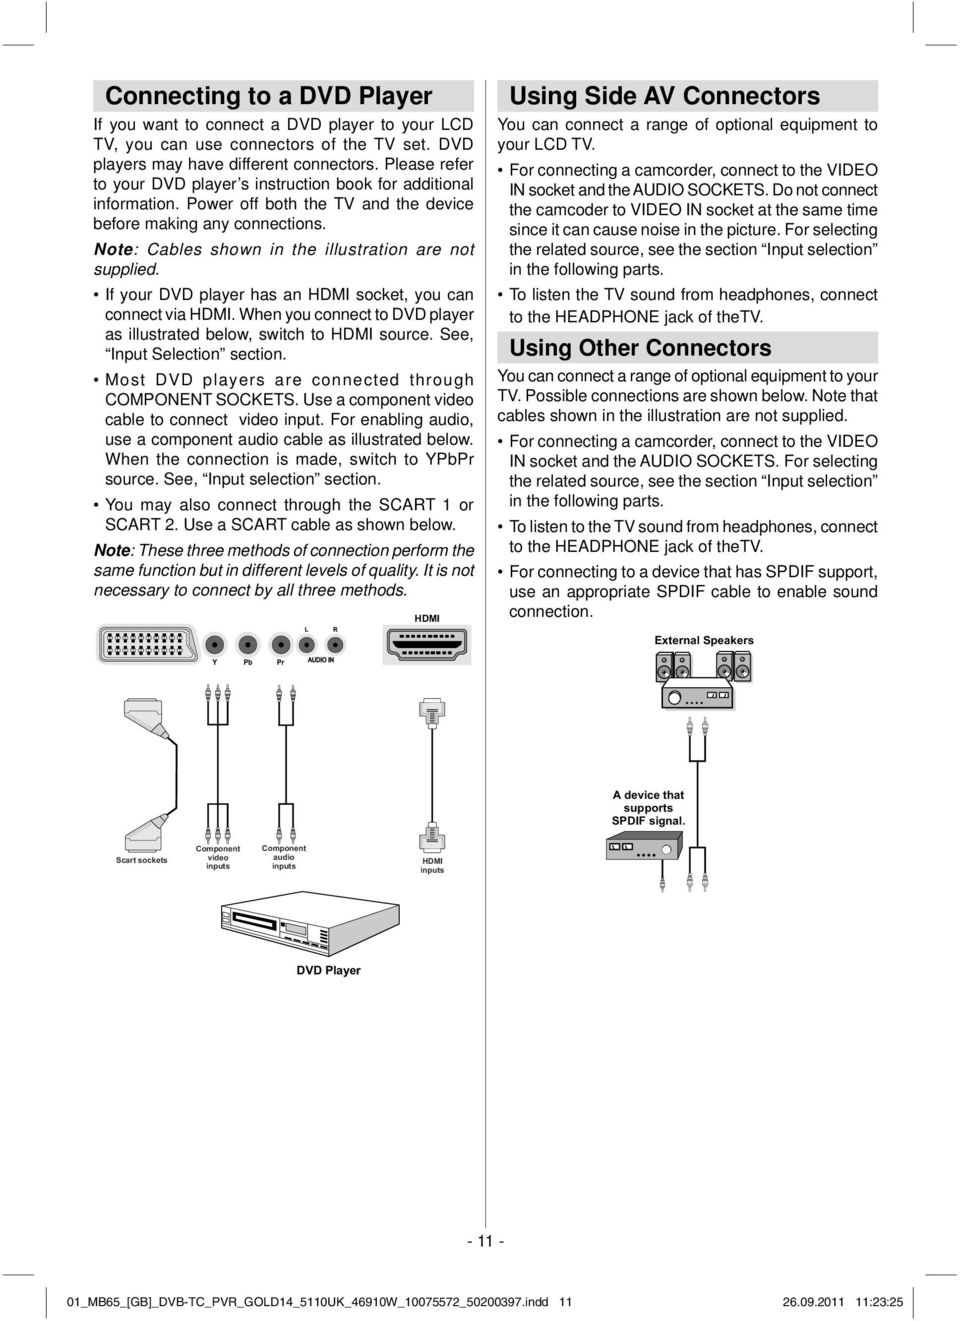 Note: Cables shown in the illustration are not supplied. If your DVD player has an HDMI socket, you can connect via HDMI. When you connect to DVD player as illustrated below, switch to HDMI source.